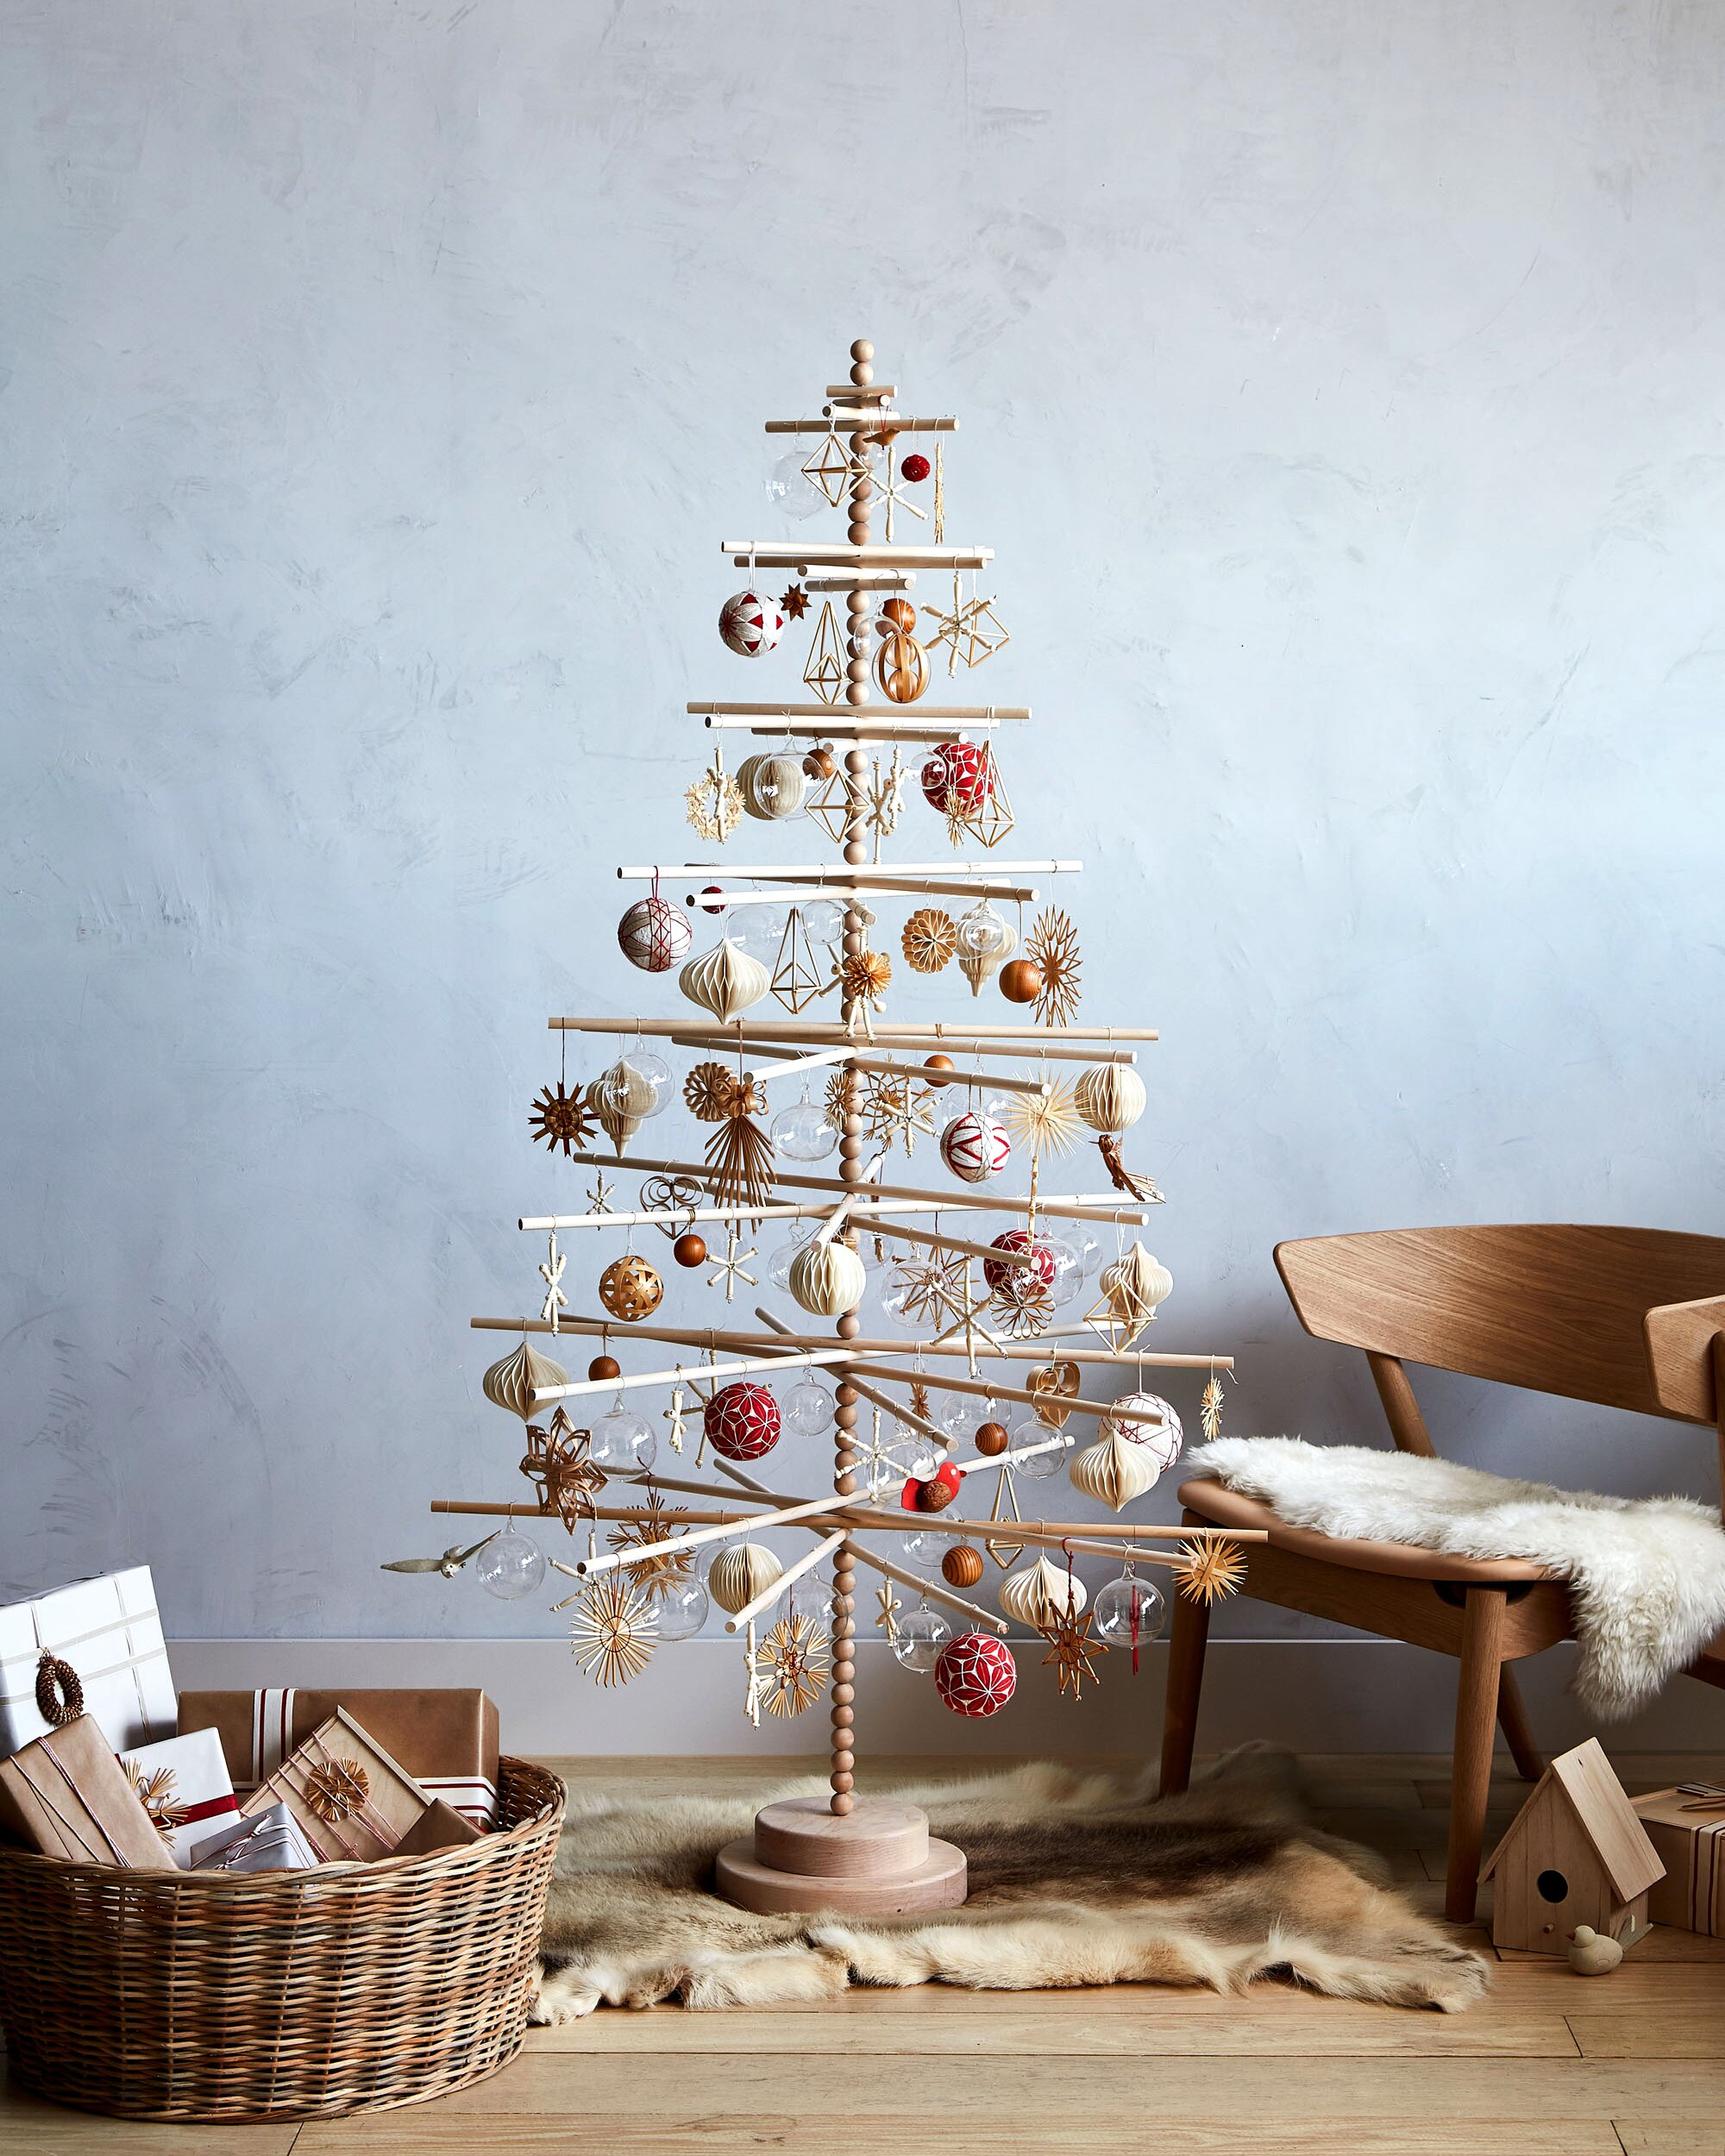 How To Decorate A Wooden Christmas Tree In Scandinavian